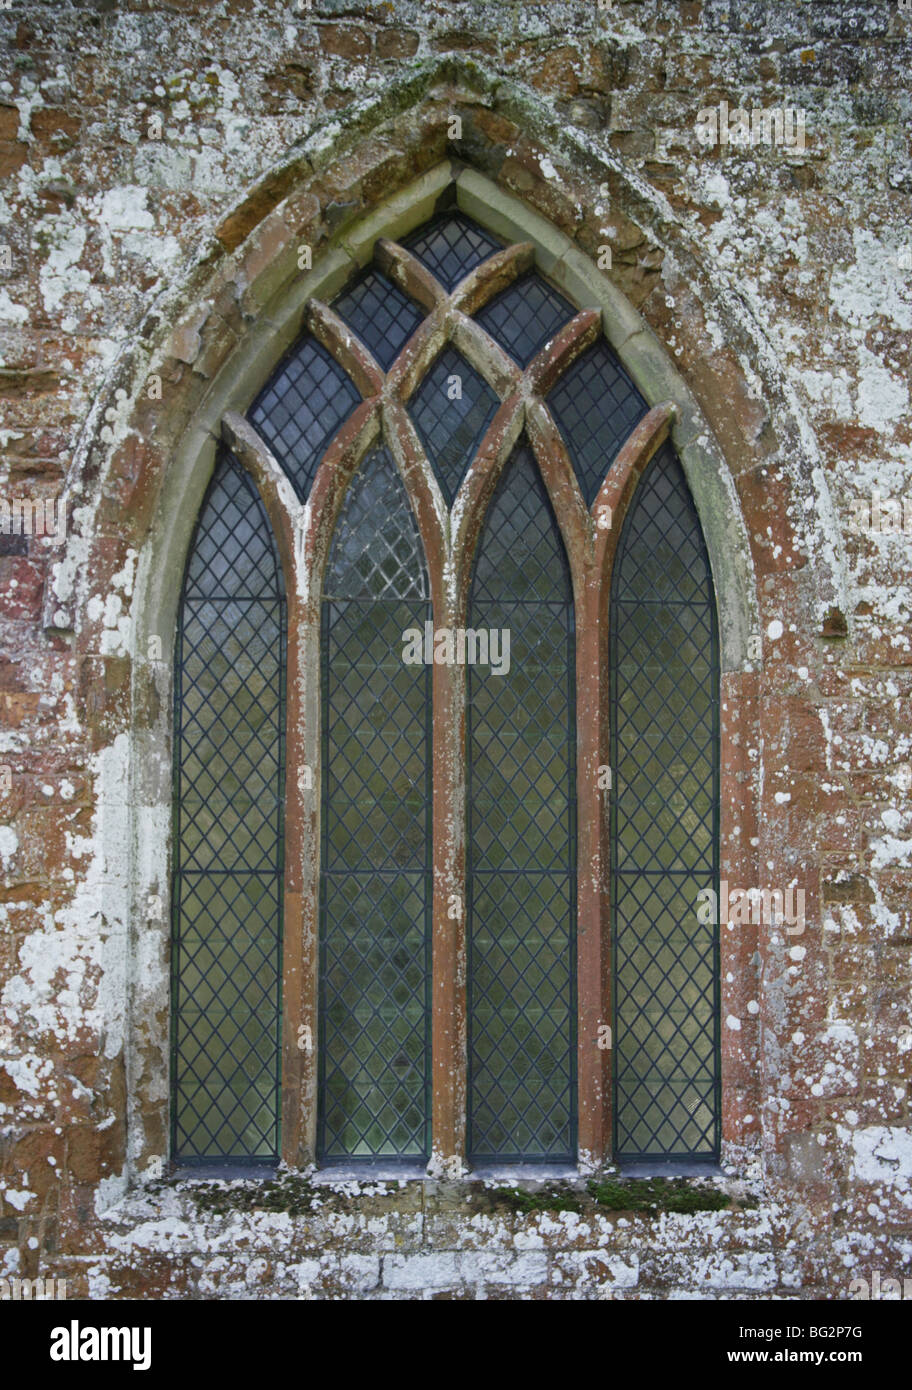 13th Century Church Window With Simple Y Tracery Burton Dassett Warwickshire